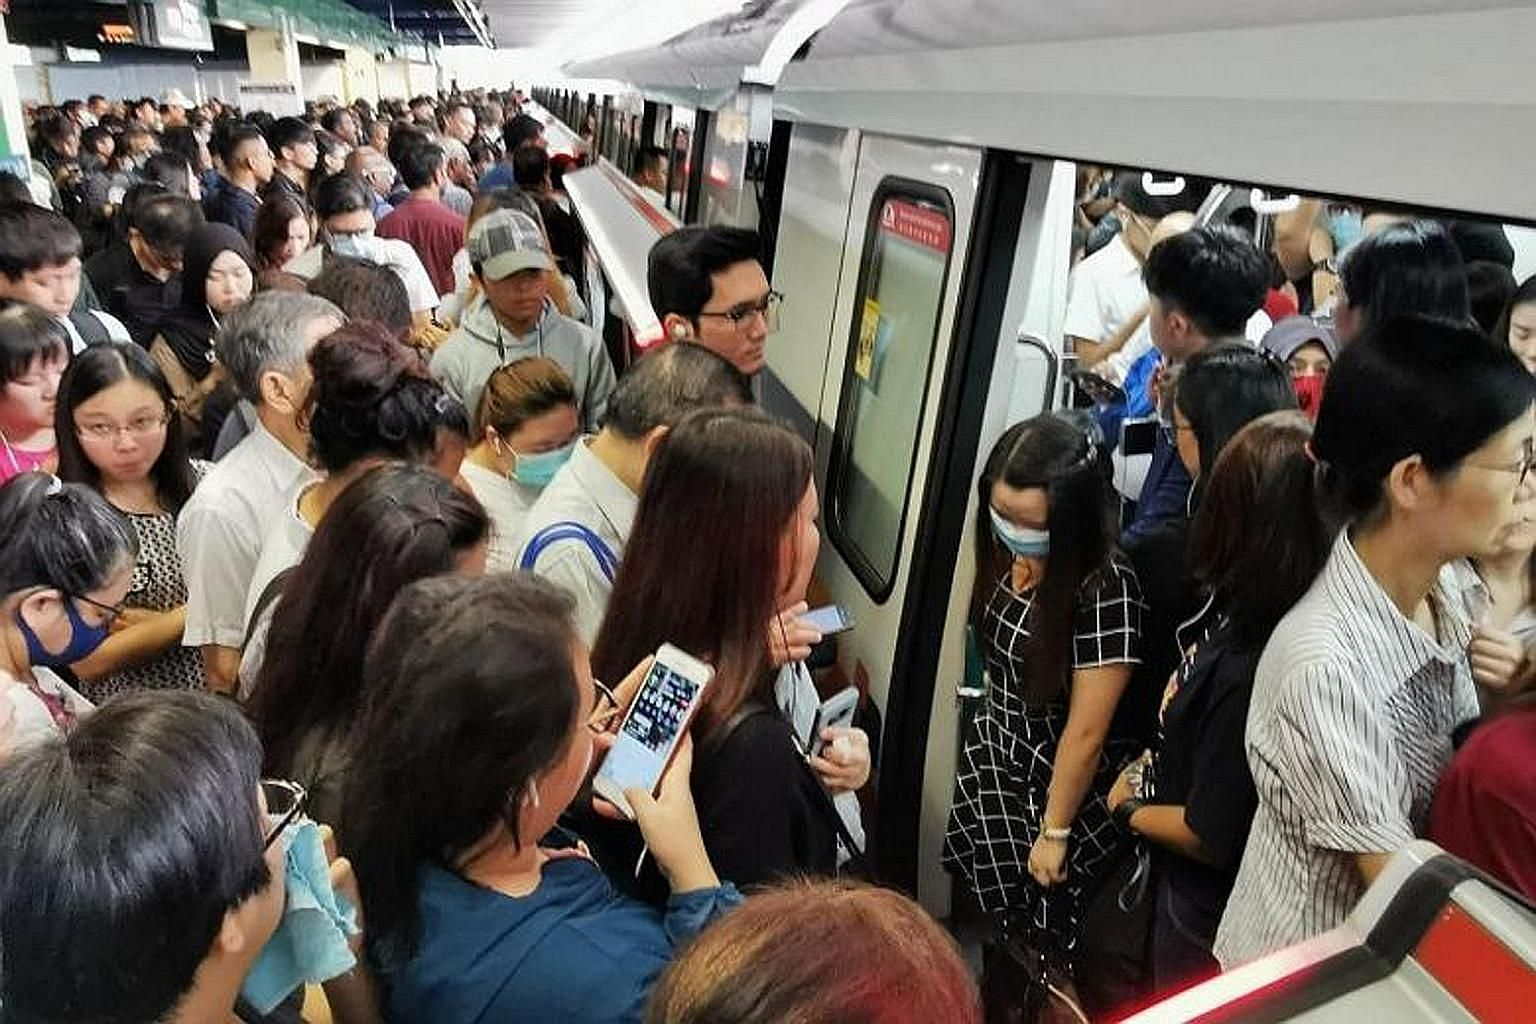 Commuters at Bukit Batok MRT station, which was also affected as it is on the North-South Line, yesterday. PHOTO: ST READER MRT stations like Yishun (above) were jampacked with crowds when the train service from Bishan to Yio Chu Kang towards Jurong